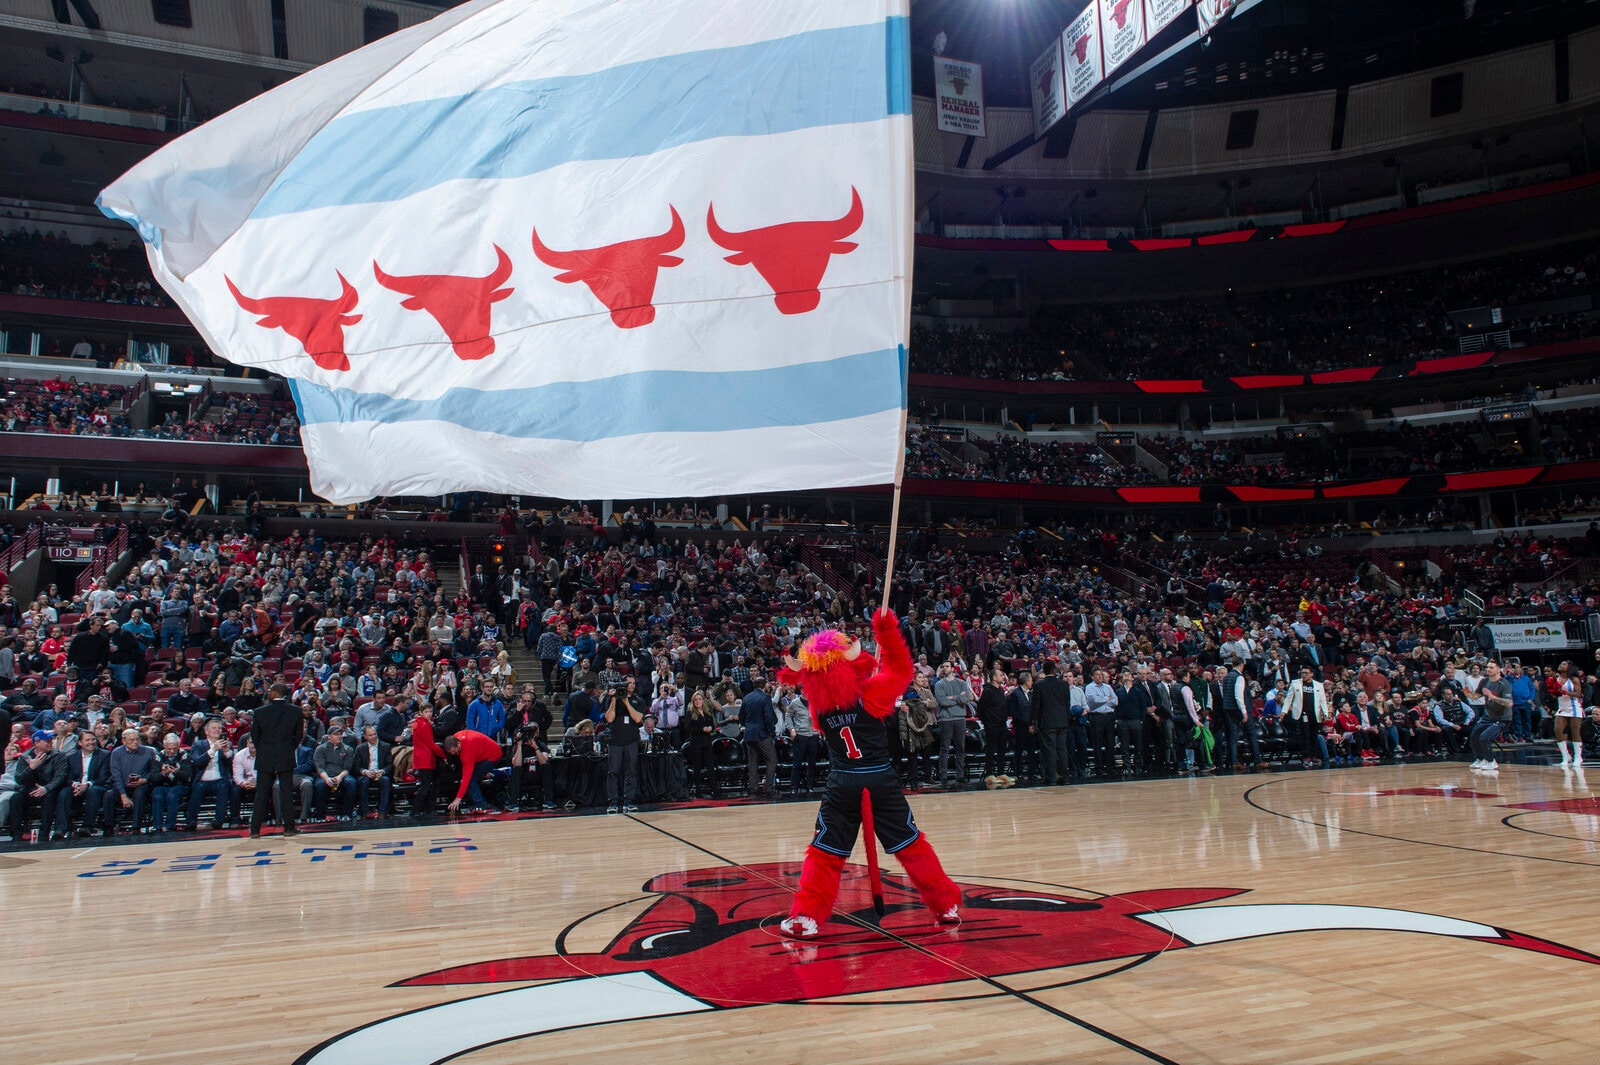 Benny flies the Chicago Flag